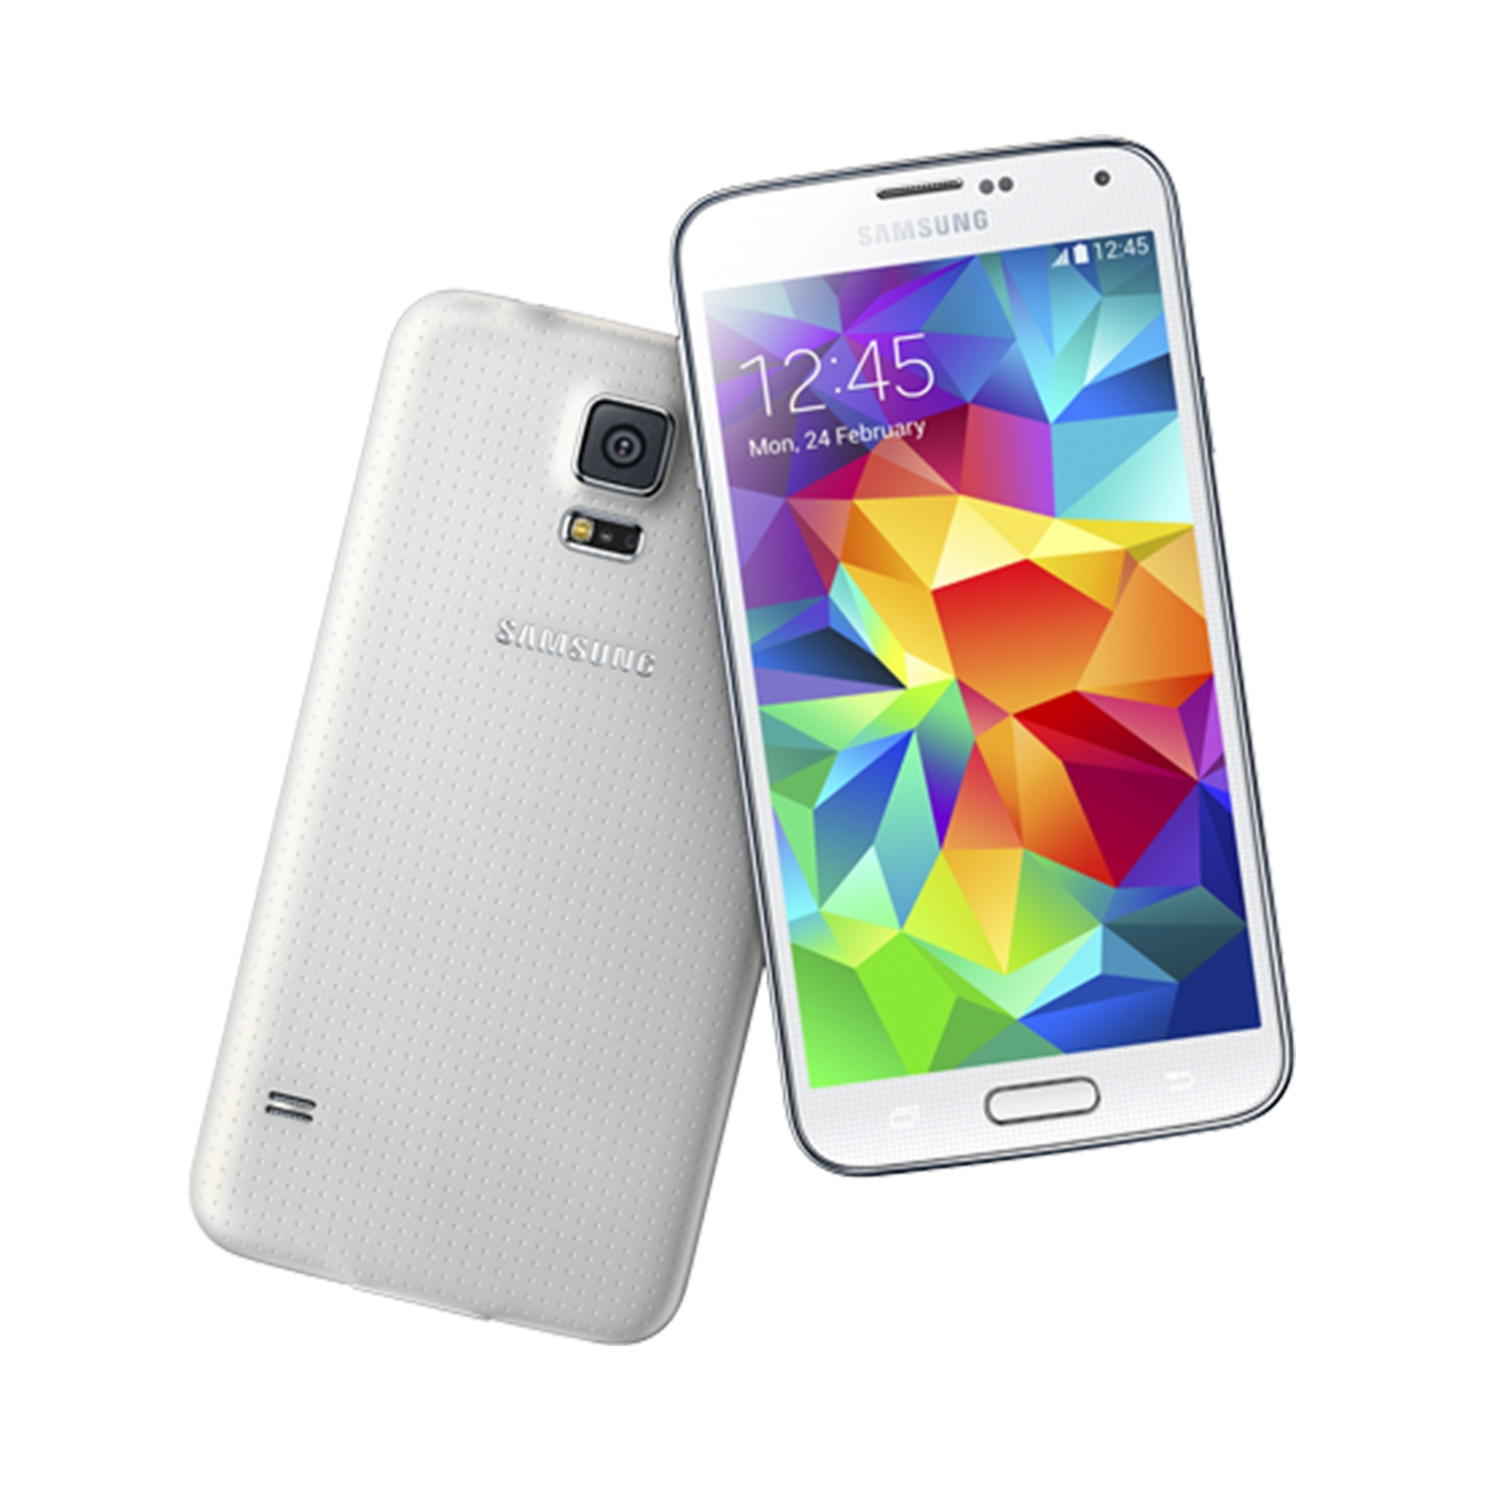 Phone Cheap Android T Mobile Phones samsung galaxy s5 16gb sm g900t android smartphone t mobile white